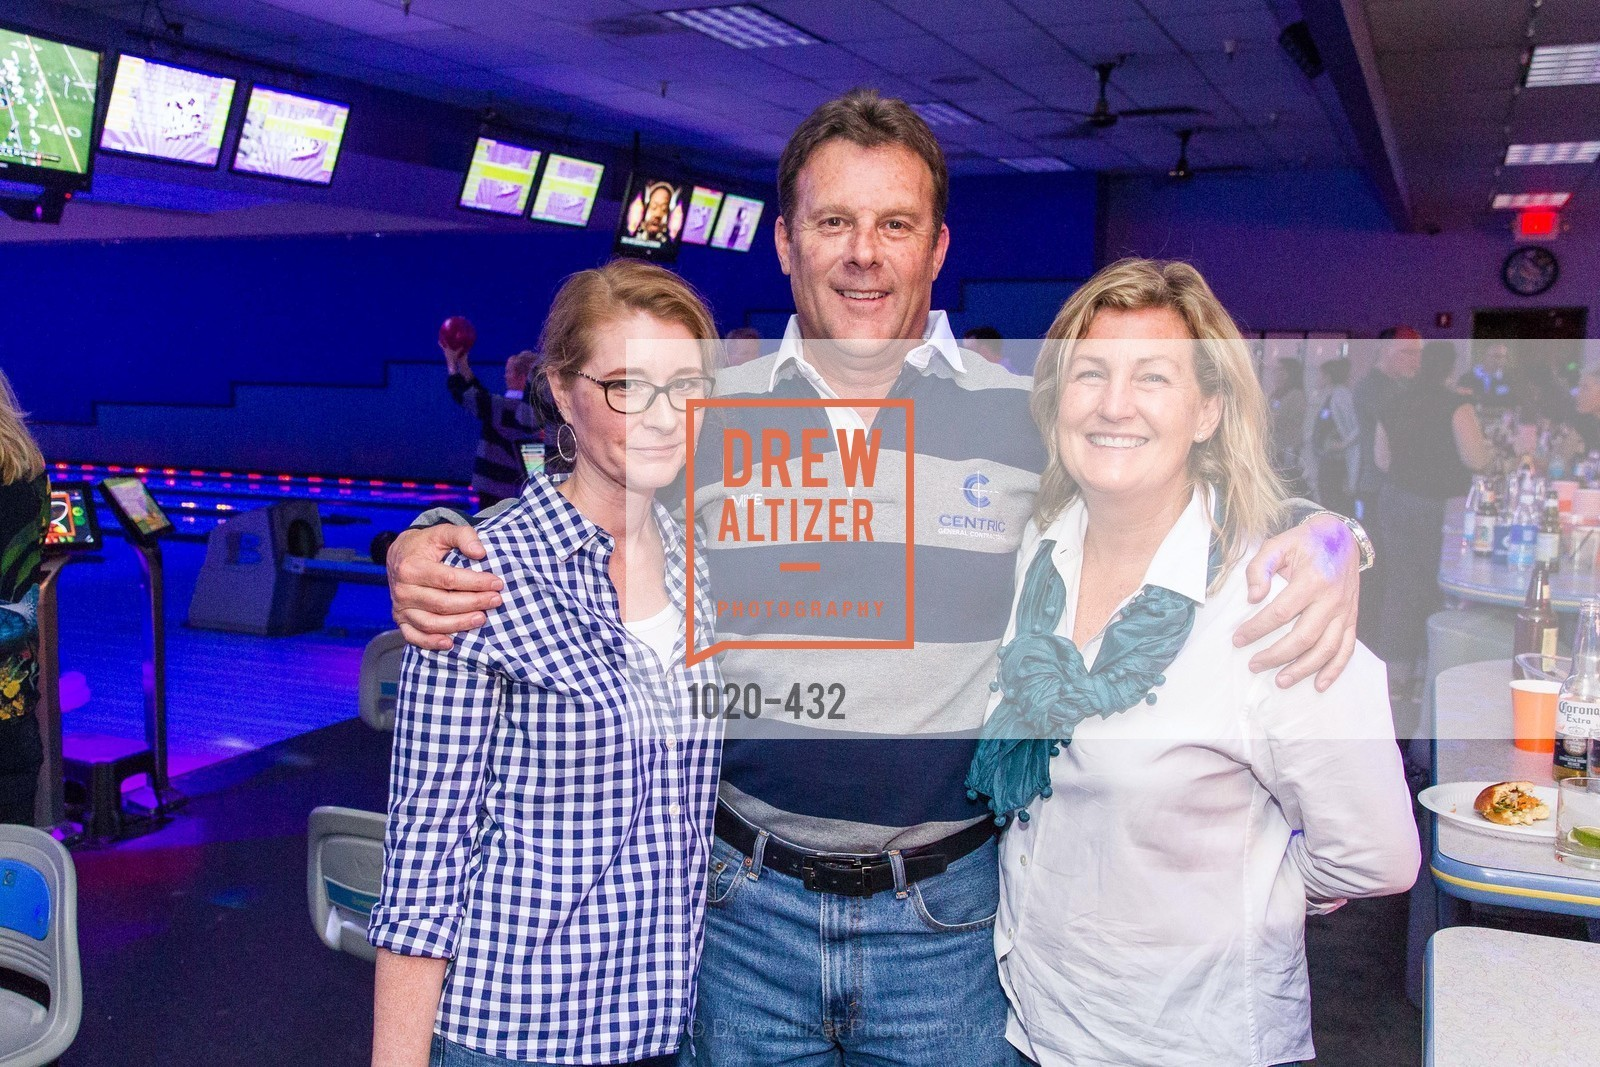 Joelle Colosi, Michael Sweeney, Flin McDonald, ScavulloDesign Centric Builders Bowling Party, Presidio Bowl. 93 Moraga Ave, October 29th, 2015,Drew Altizer, Drew Altizer Photography, full-service agency, private events, San Francisco photographer, photographer california